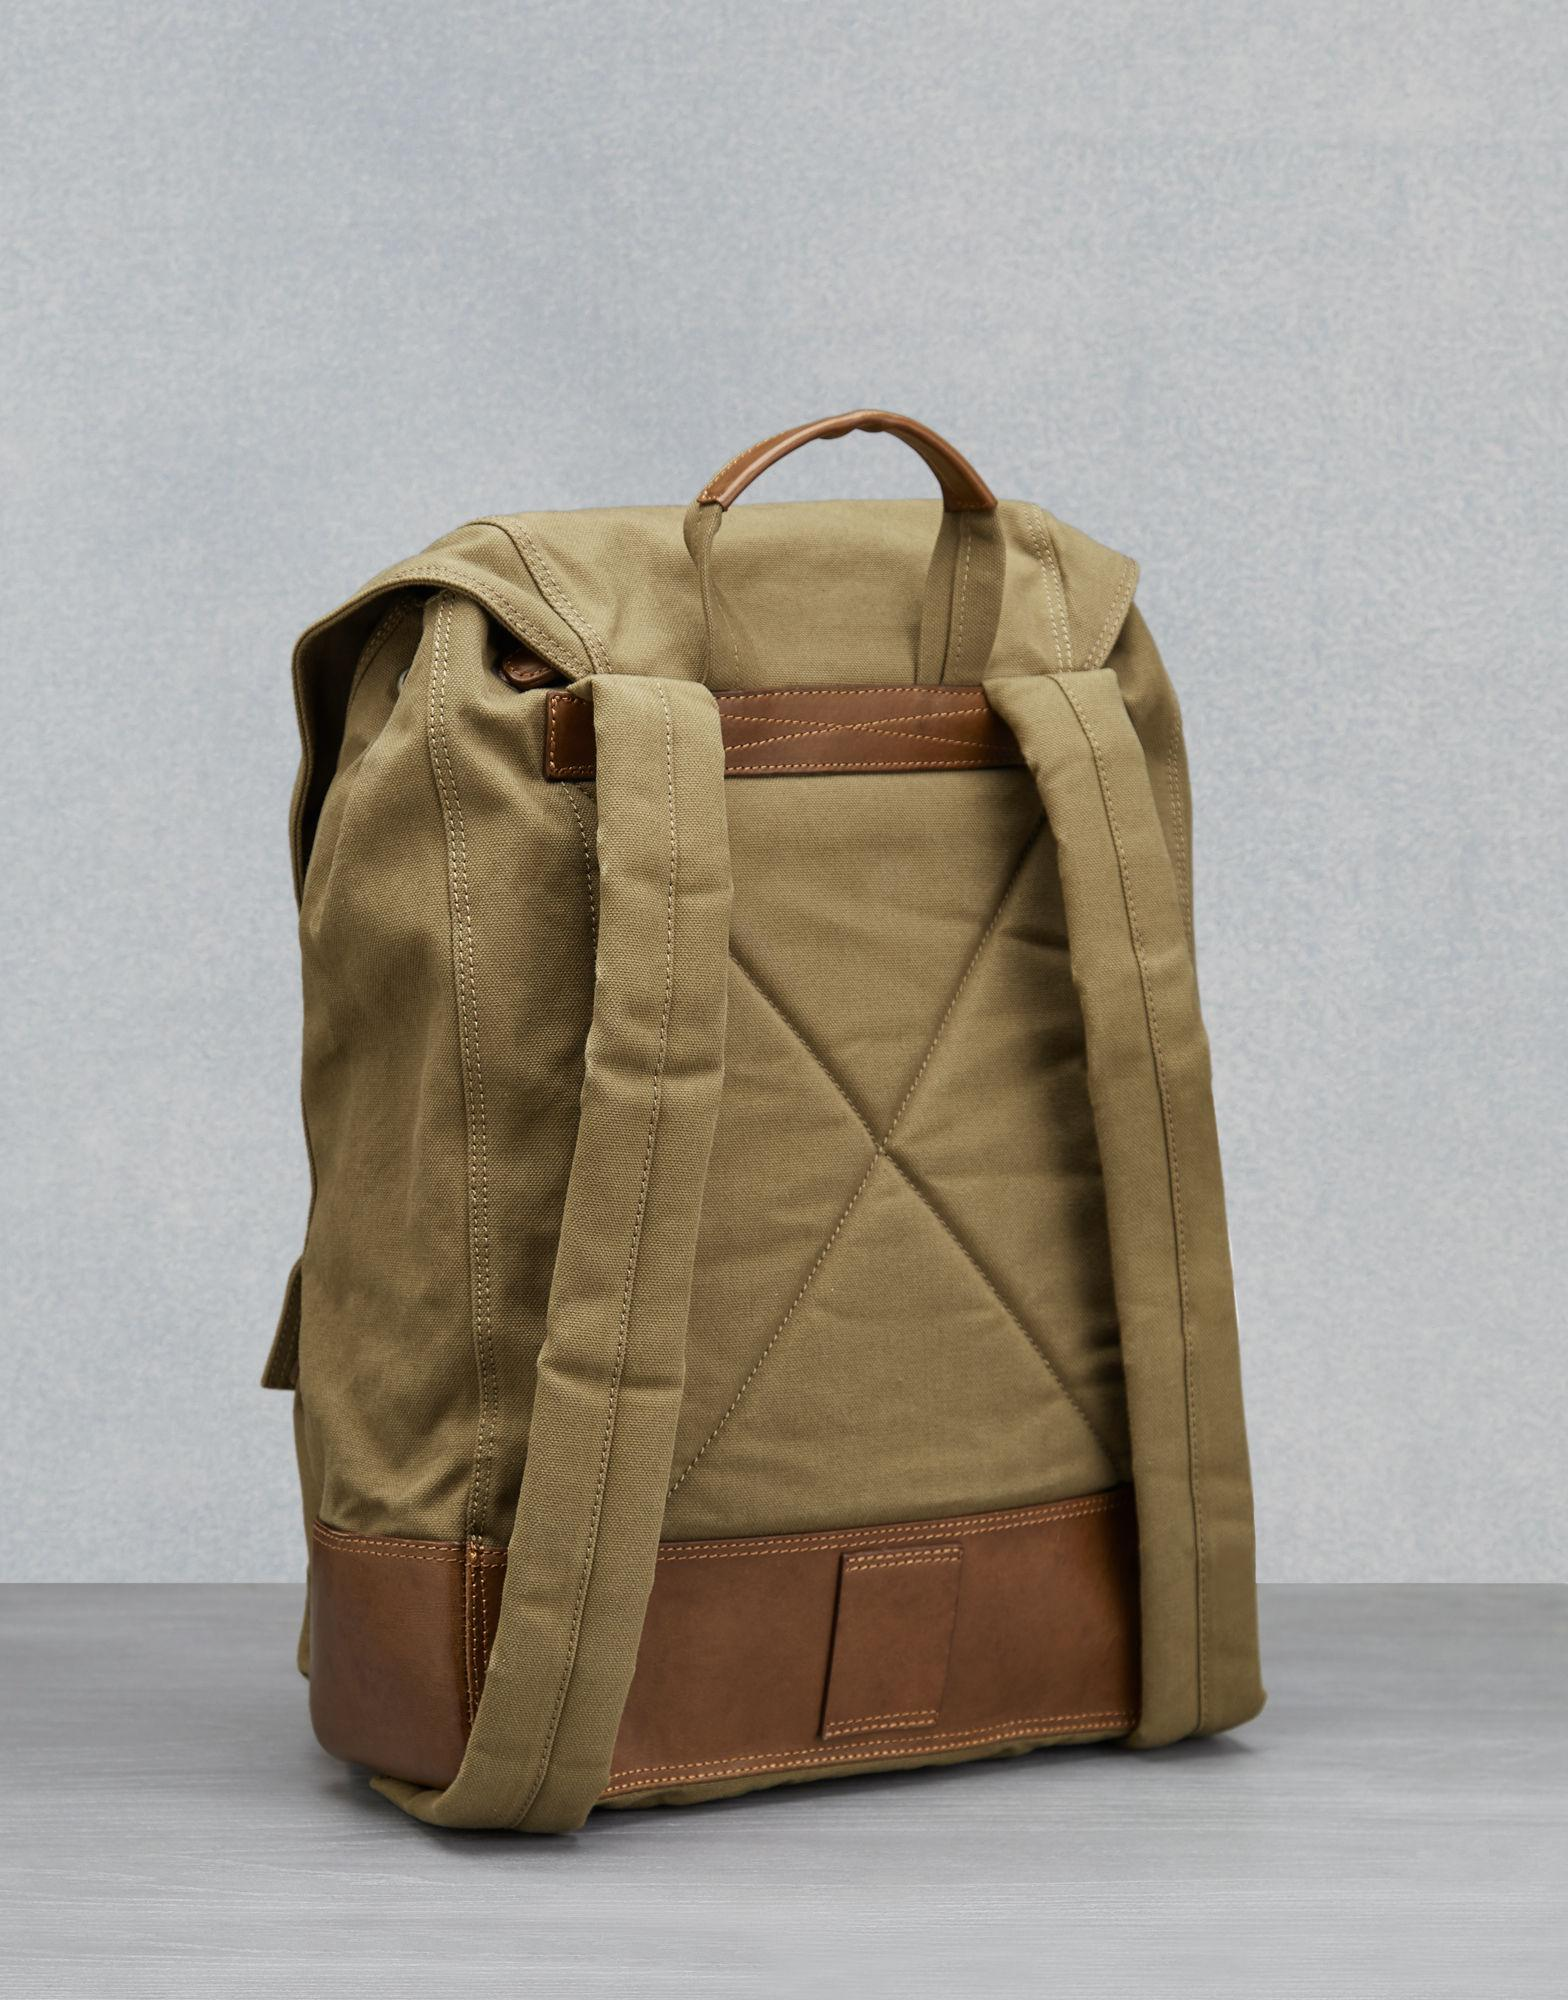 Lyst - Belstaff Colonial Backpack in Natural for Men a8eae25166